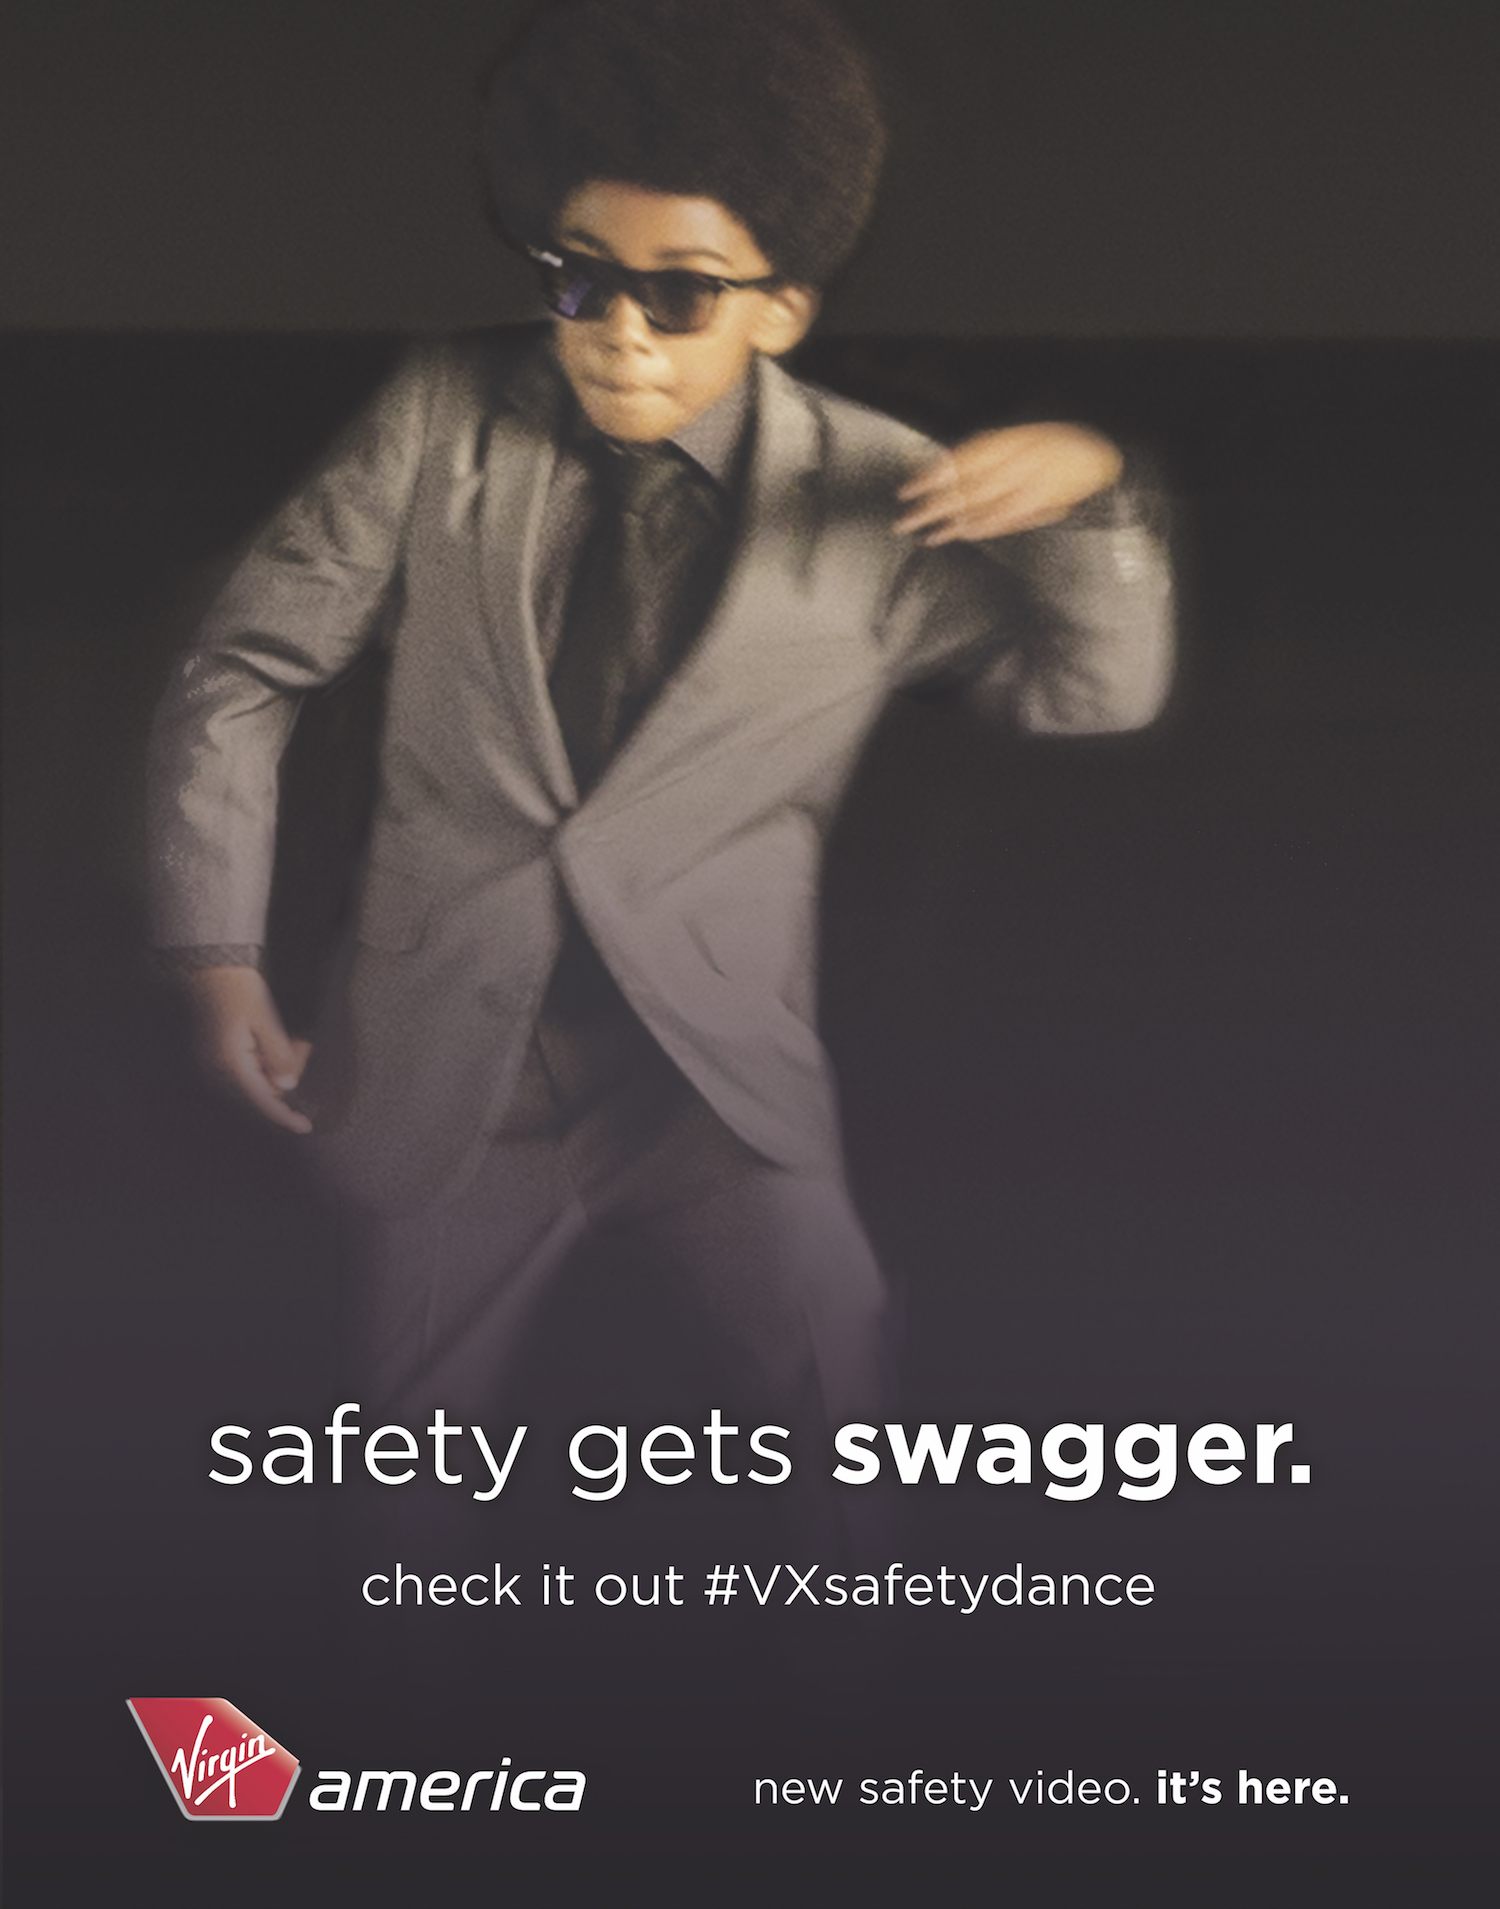 Safety Video_Signage_Swagger2.jpg